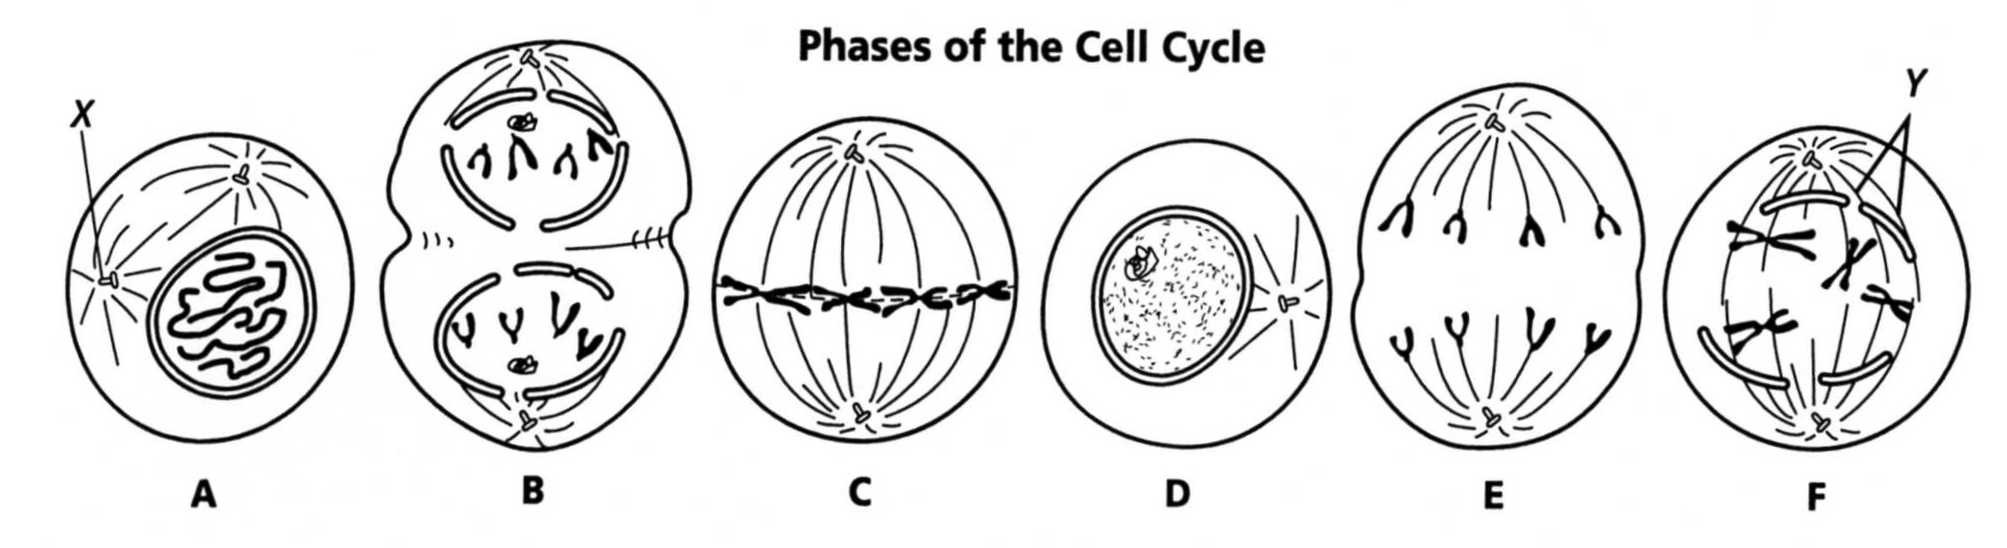 Phases Of The Cell Cycle Worksheet Answers Free Worksheets Library – Phases of the Cell Cycle Worksheet